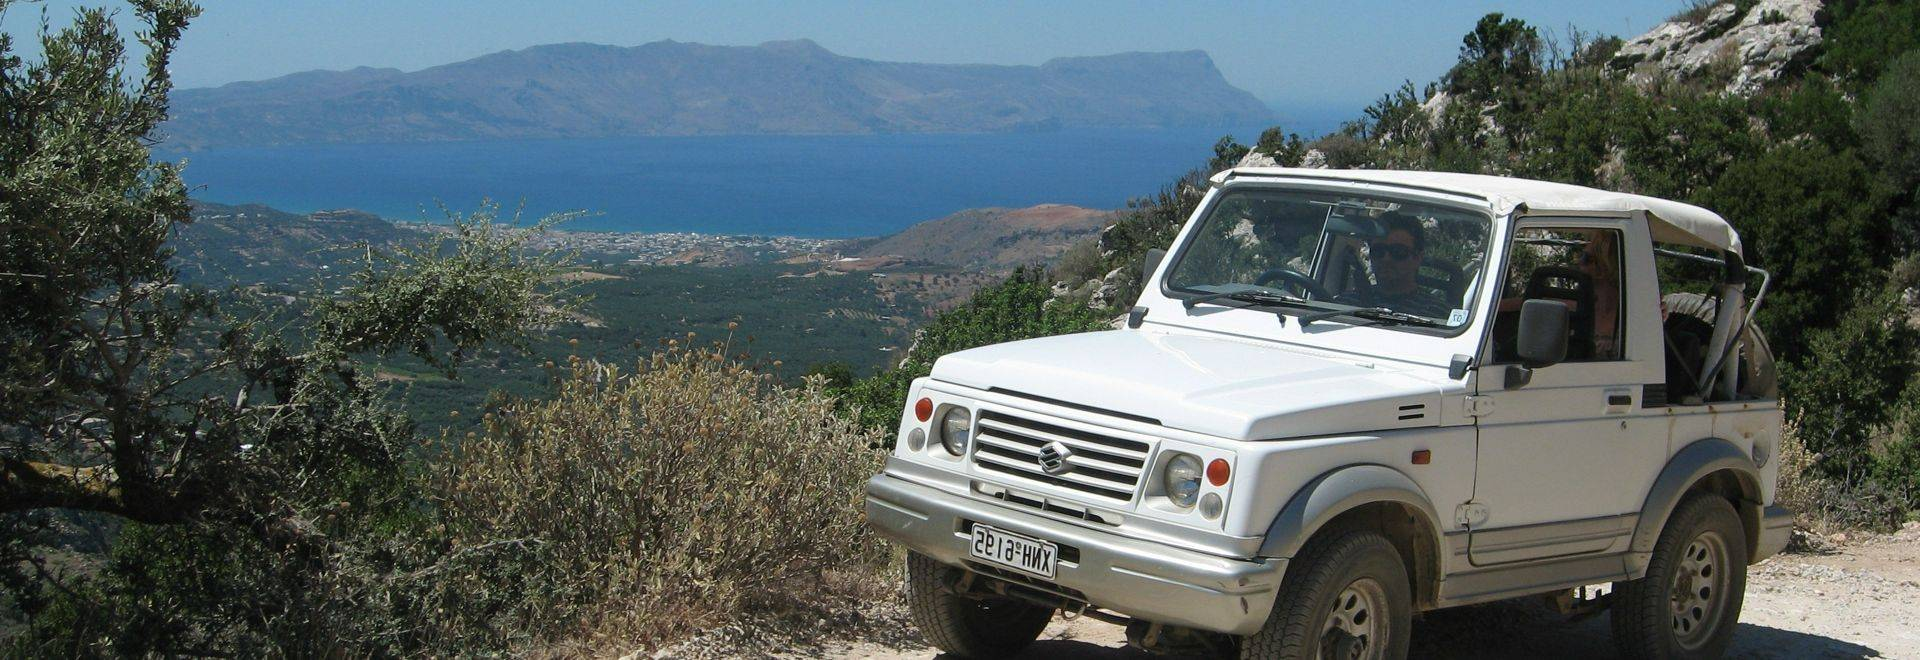 Crete Jeep Safari   Jeep   Copy